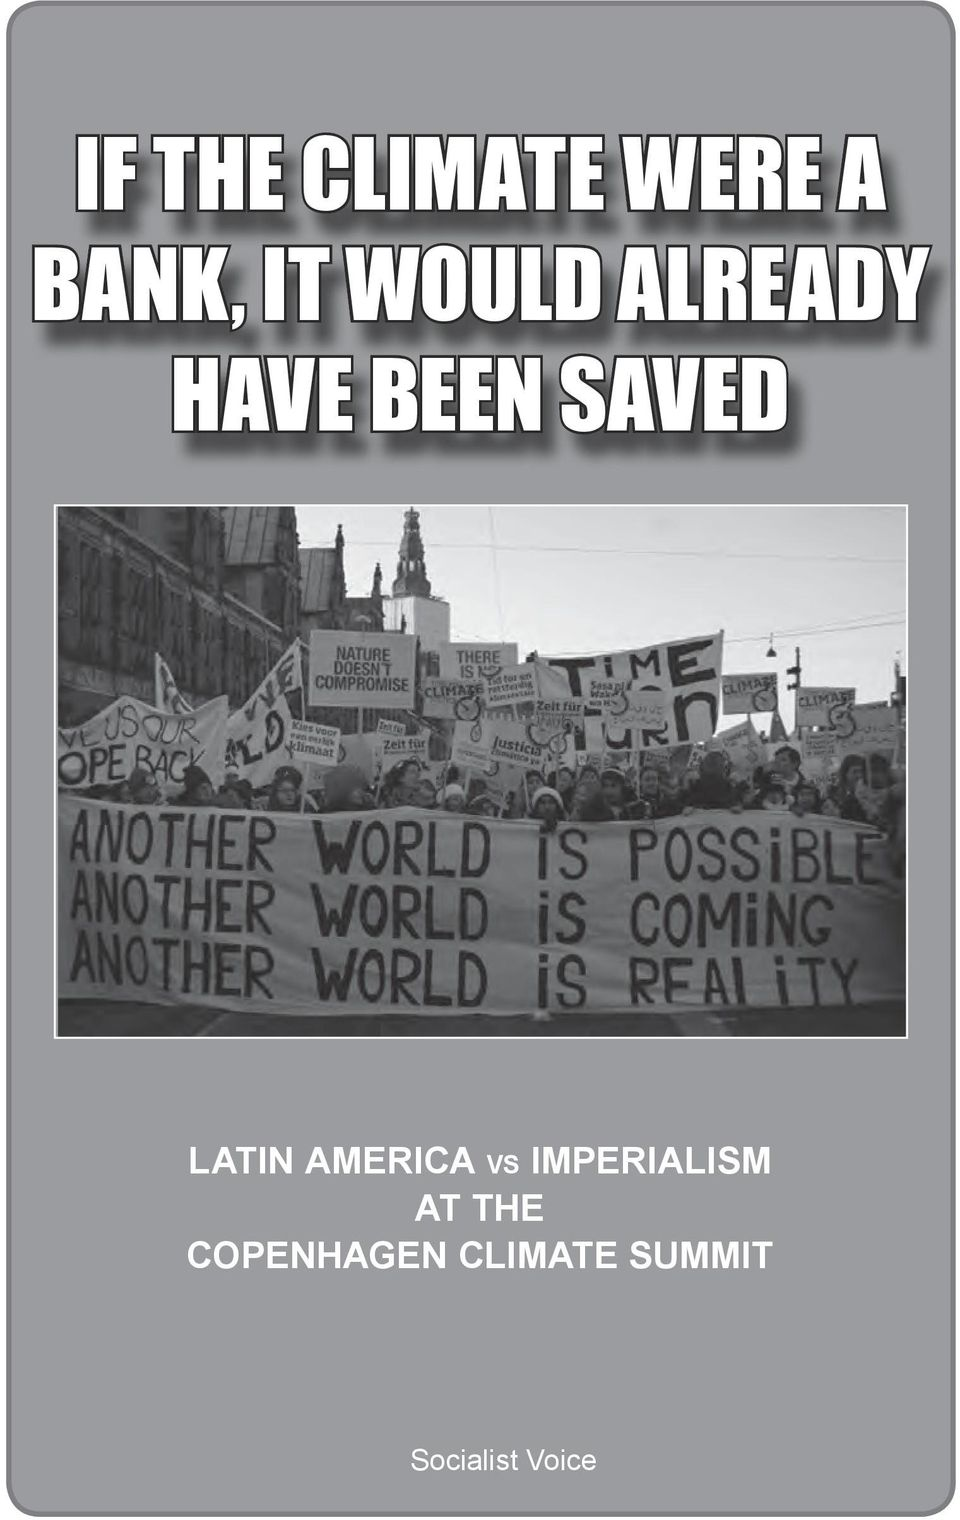 Latin America vs Imperialism at